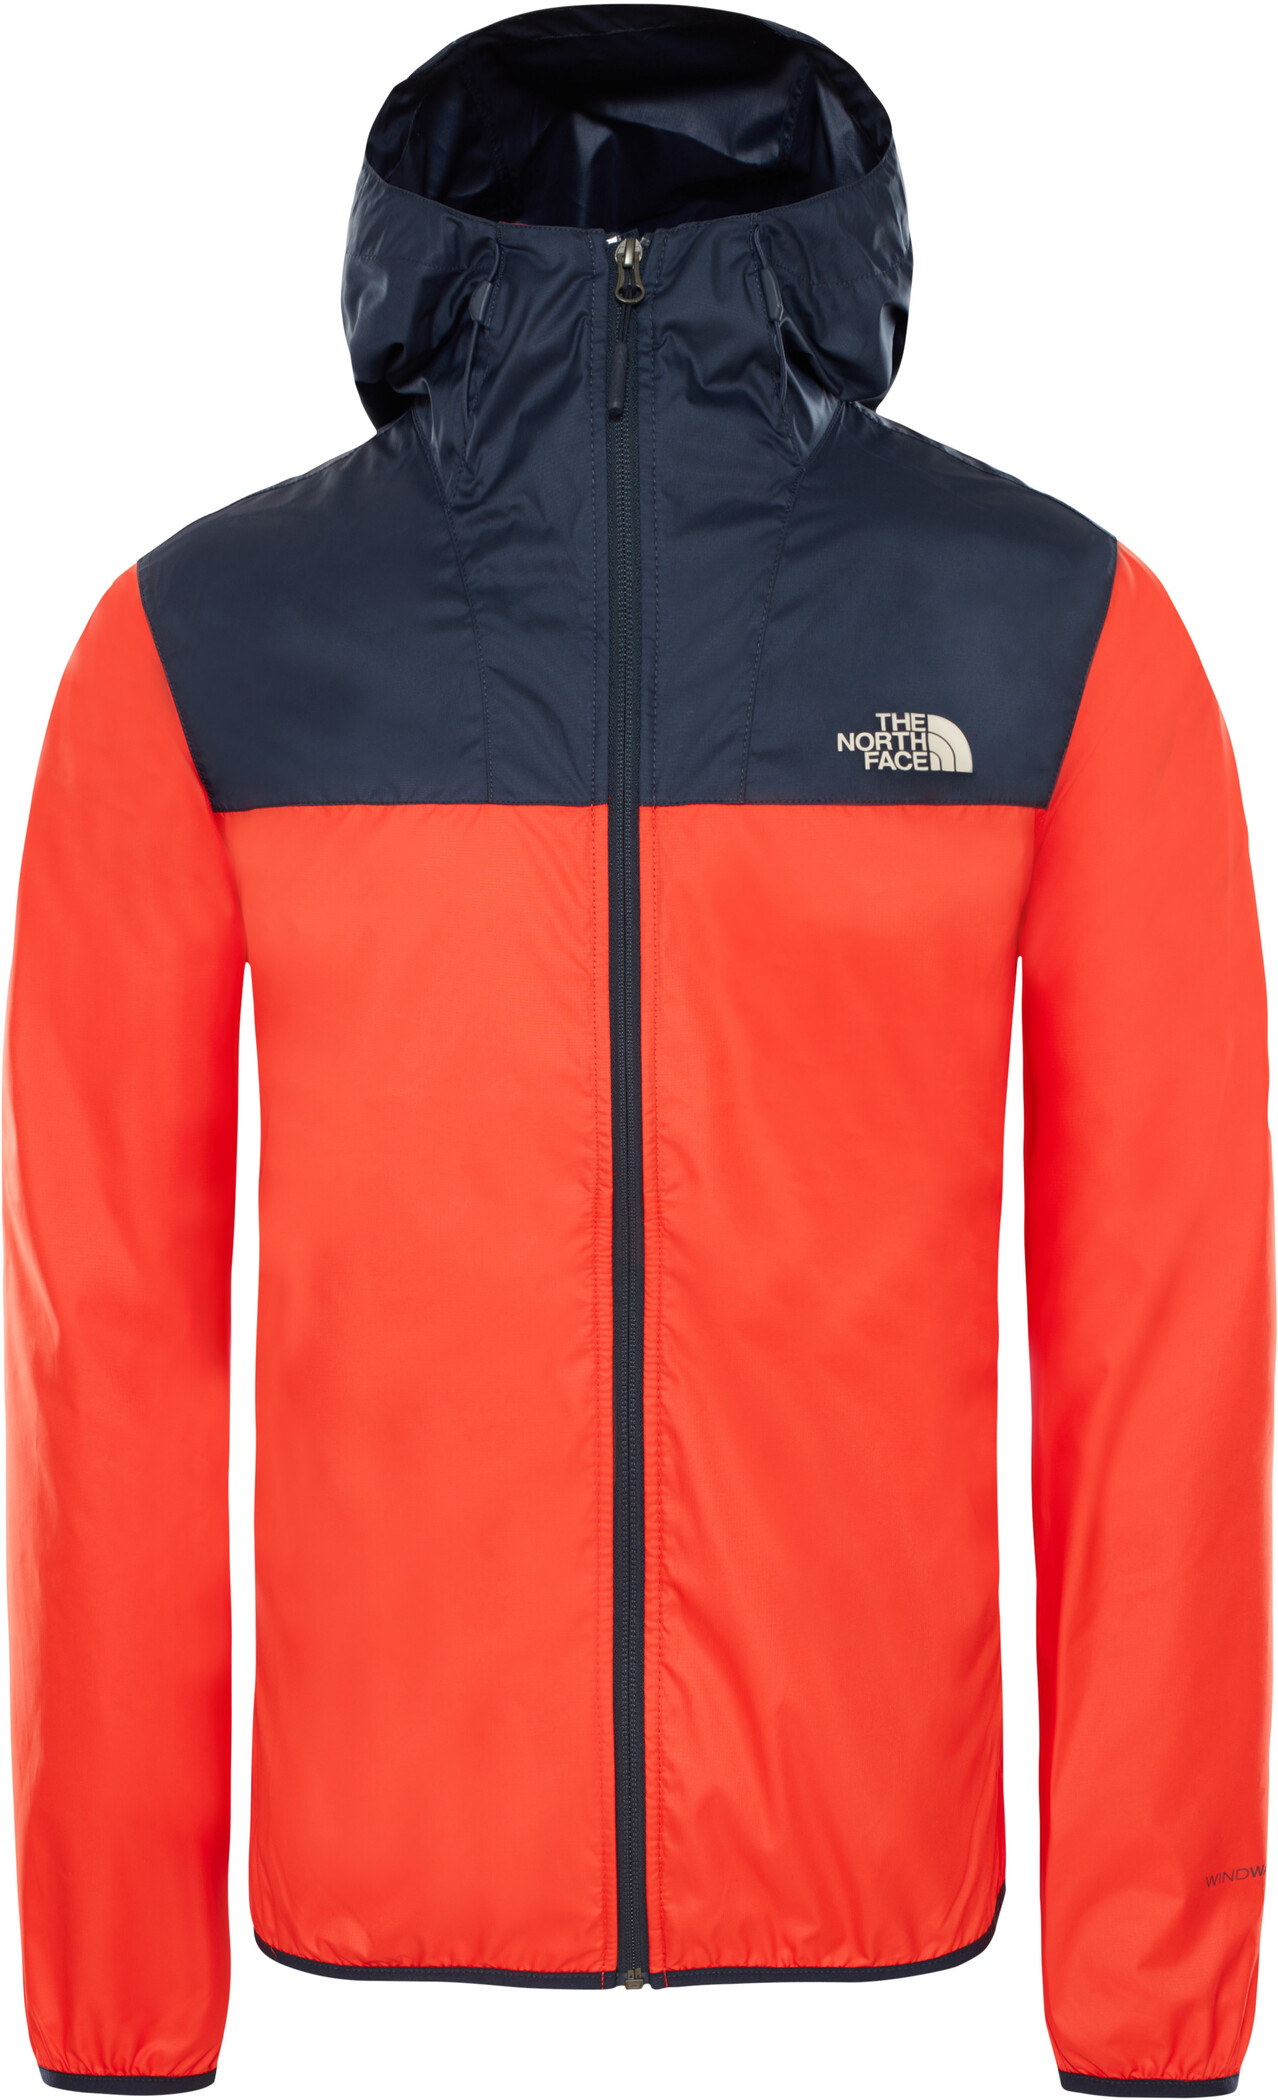 The North Face Cyclone 2.0 Kapuzenjacke Herren fiery redurban navy